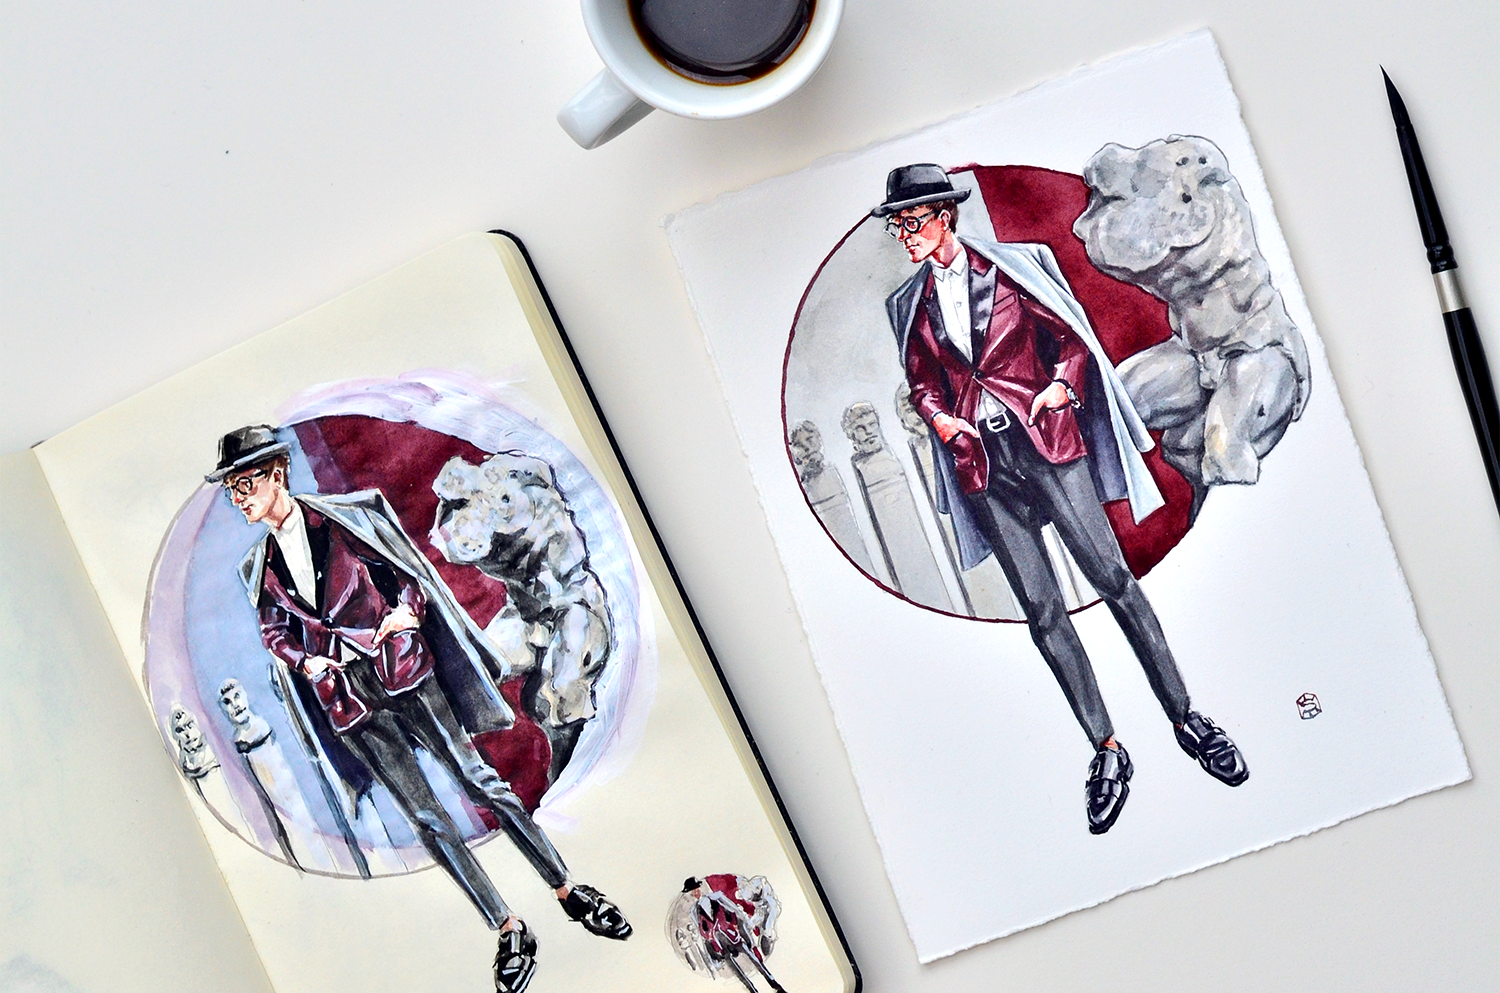 An open sketchbook sits next to a painting, each depicting the Express Man menswear illustration